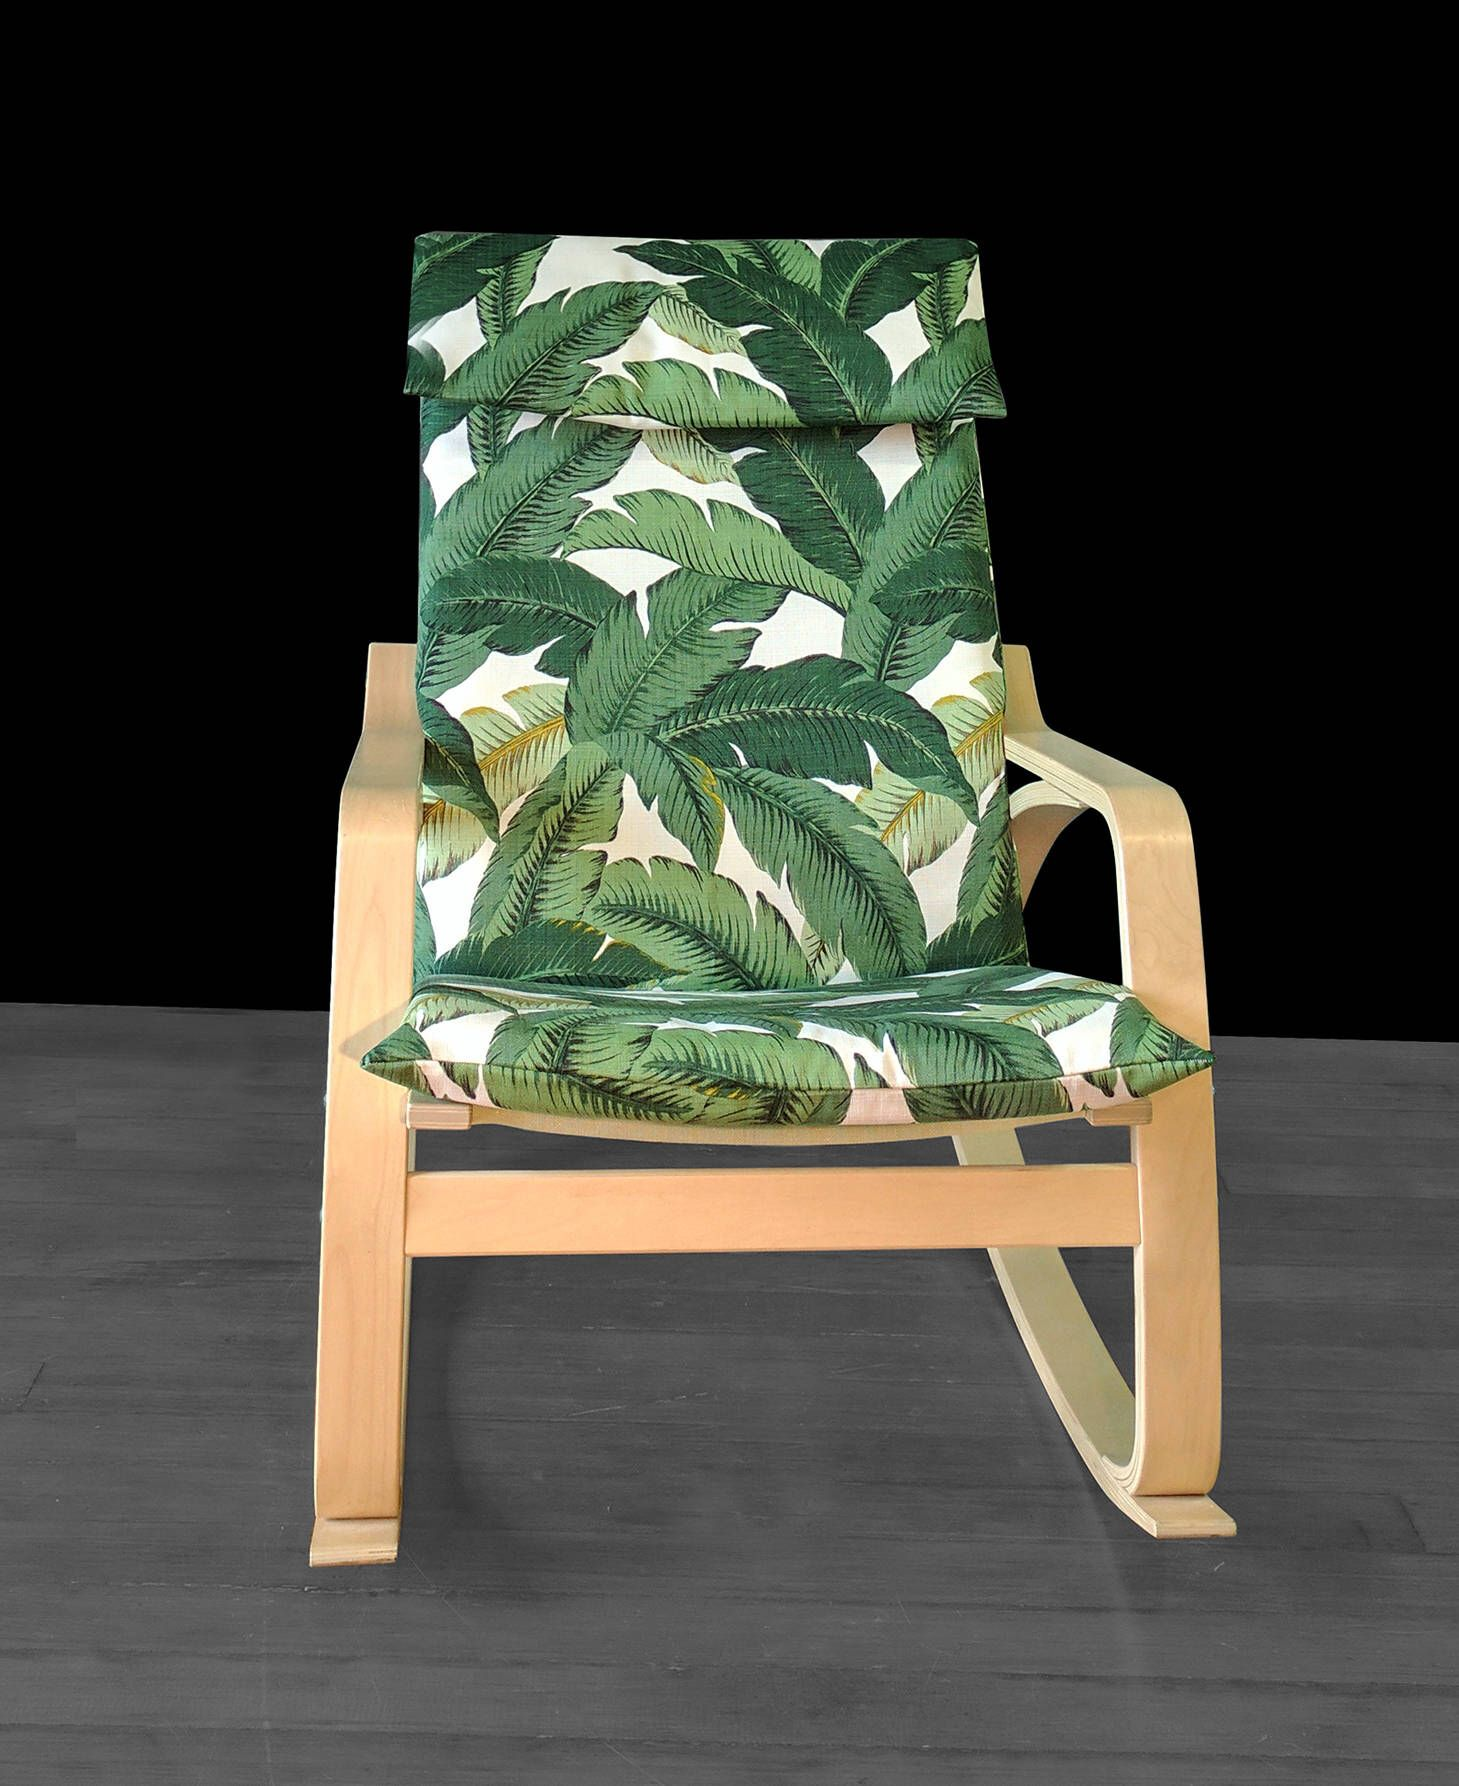 Tropical Leaf Ikea PoÄng Chair Covers Summer House Decor Tommy Bahama Indoor Outdoor